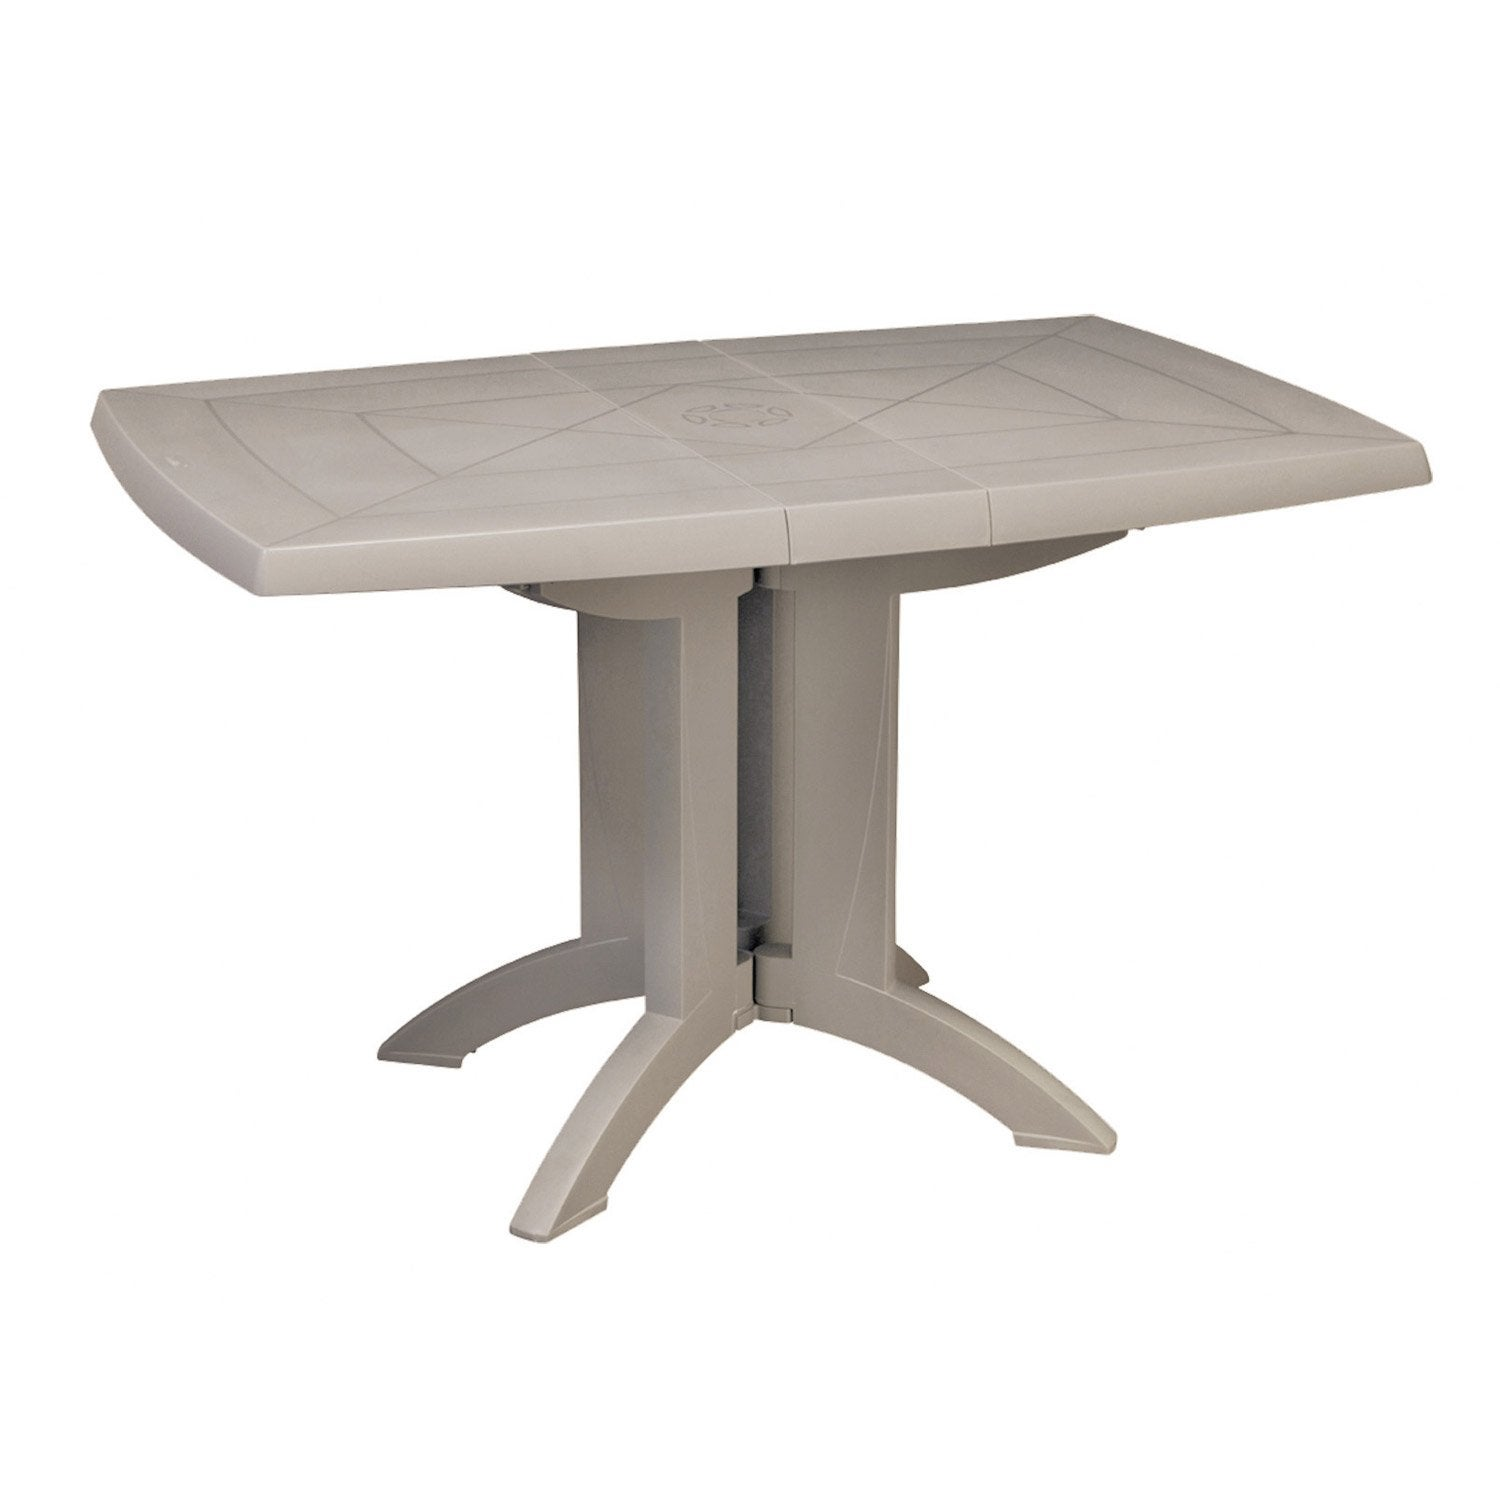 Table de jardin grosfillex v ga rectangulaire lin 4 personnes leroy merlin - Table jardin grofilex besancon ...